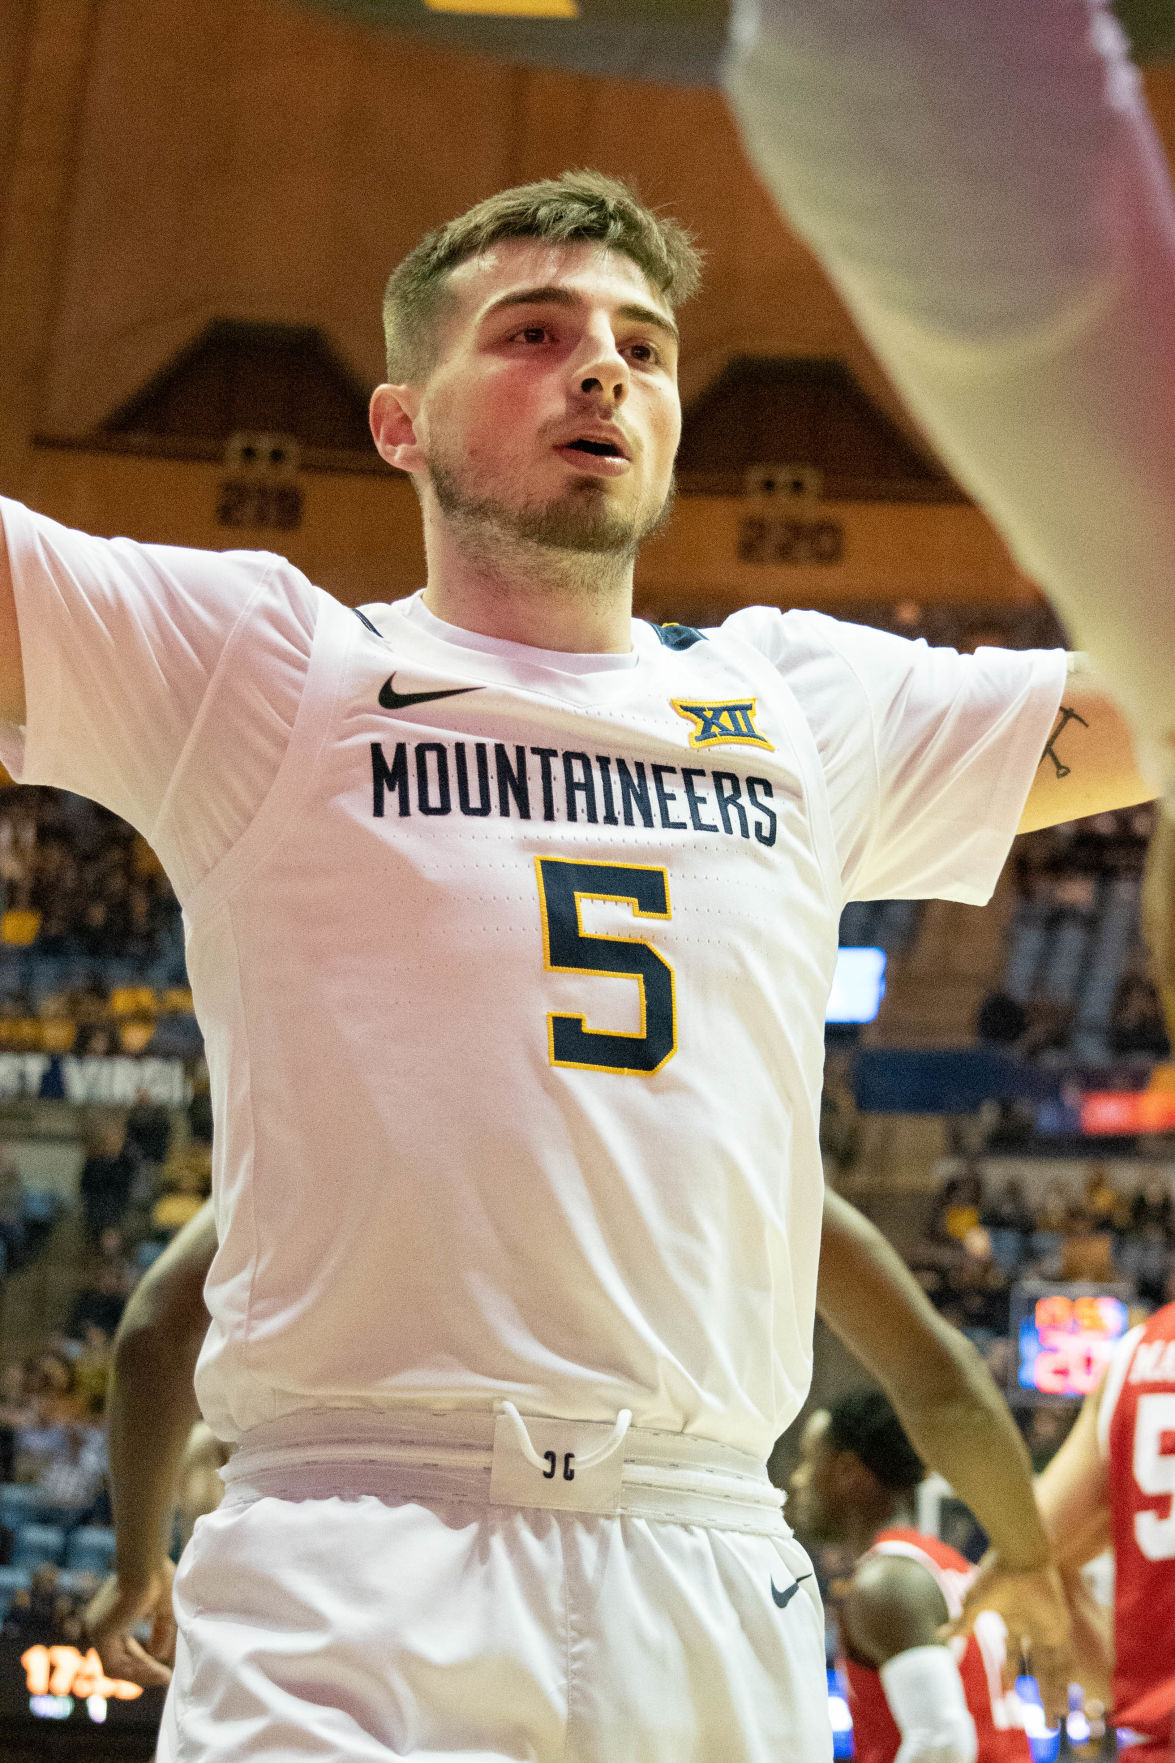 WVU guard Jordan McCabe defends against a Boston inbound pass against the Terriers at the WVU Coliseum on Nov. 22, 2019.